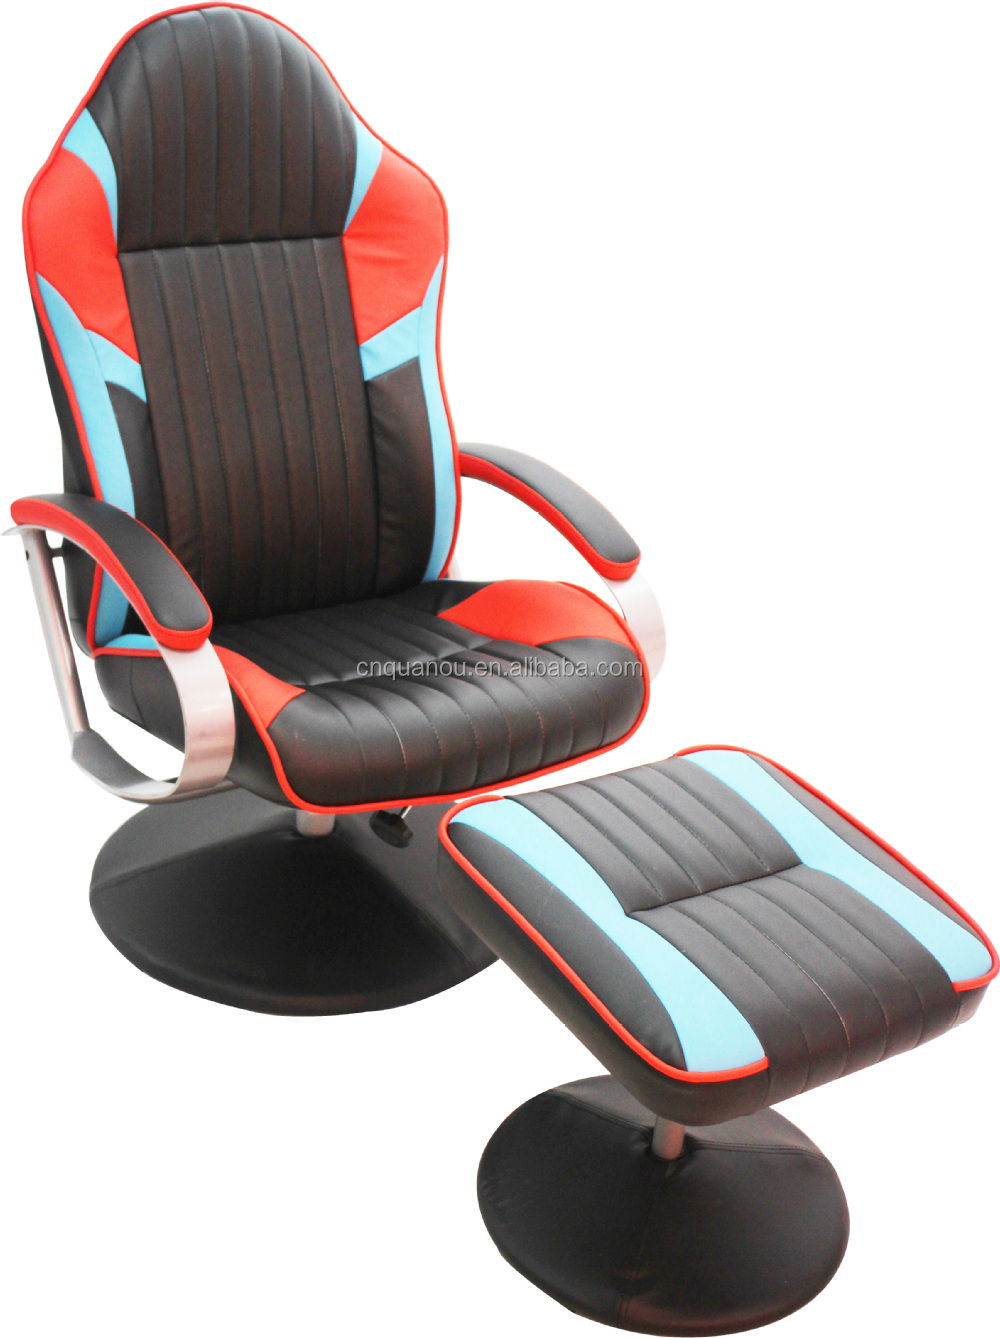 Workwell Racing Recliner With Ottoman Office Chair Car